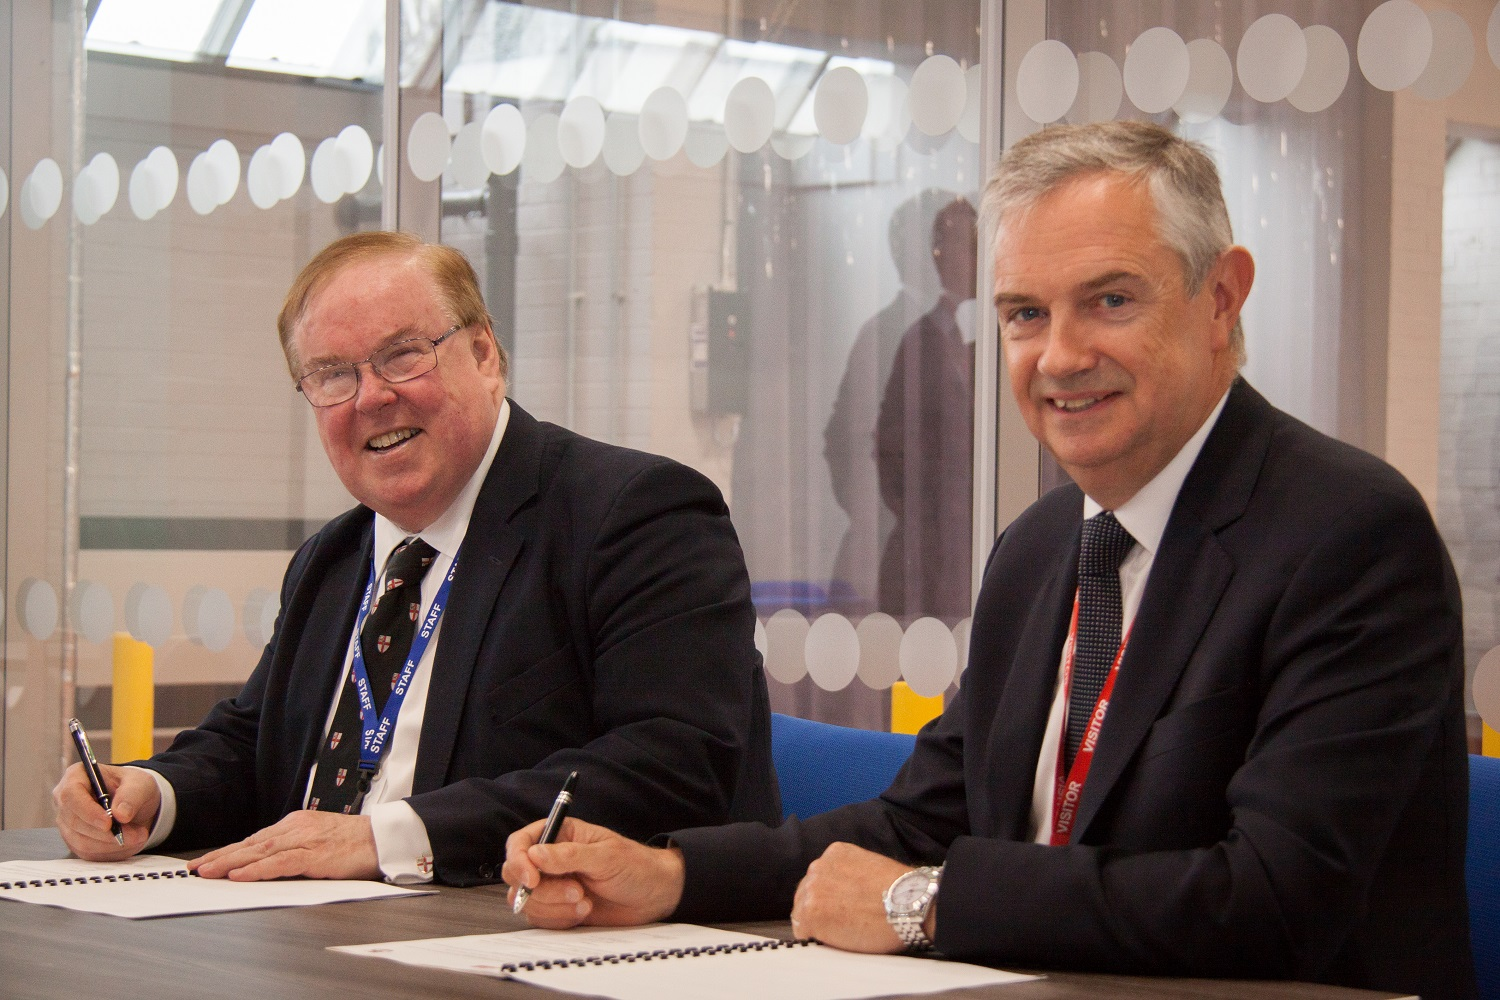 Professor Tim Wheeler, Vice Chancellor at the University of Chester (left) with Ian Funnell, Managing Director, ABB in the UK, signing the agreement.